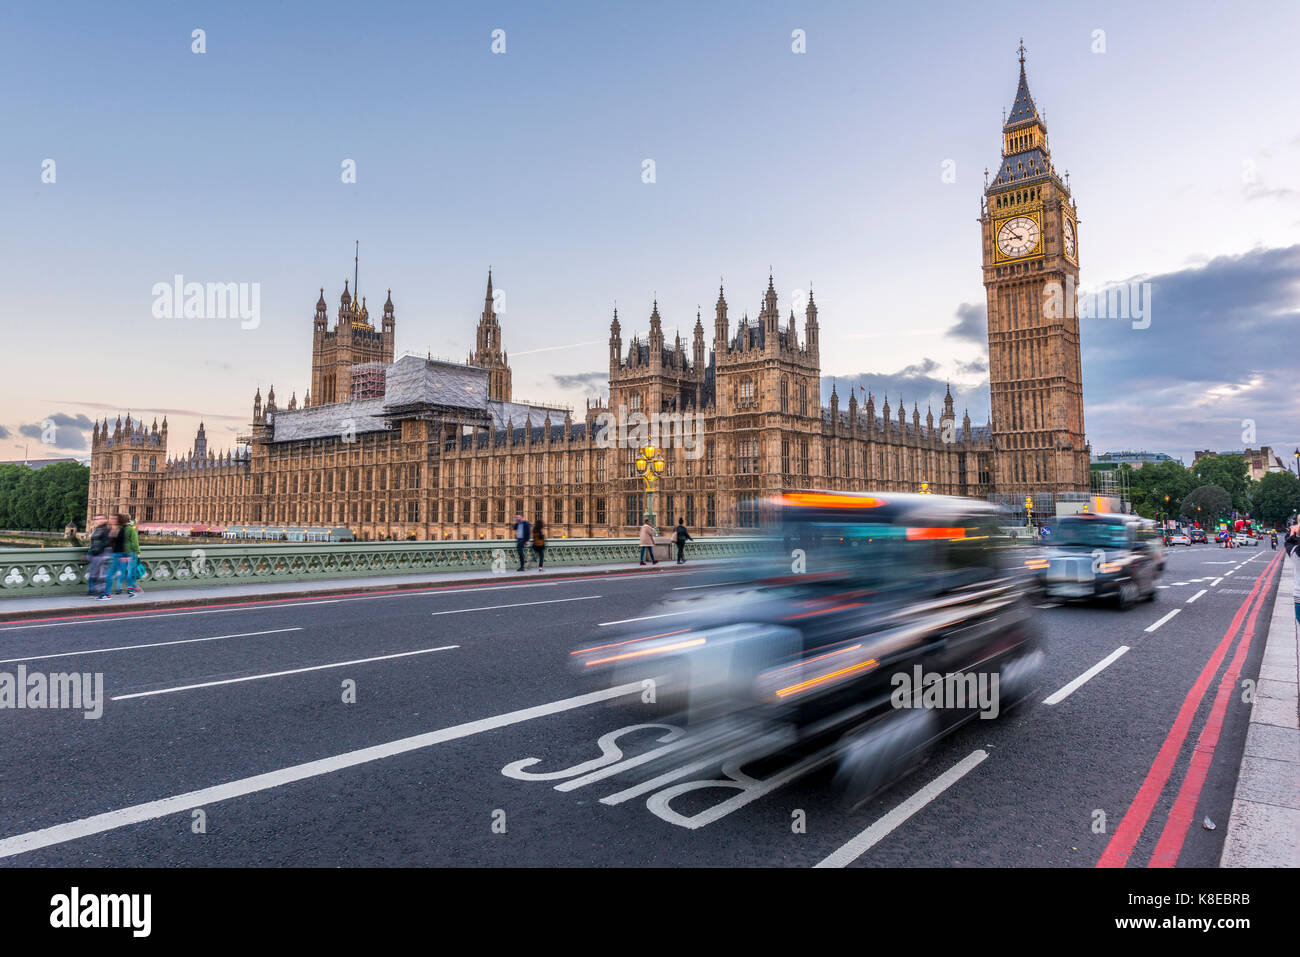 London Taxis on Westminster Bridge, Palace of Westminster, Houses of Parliament, Big Ben, City of Westminster, London, - Stock Image